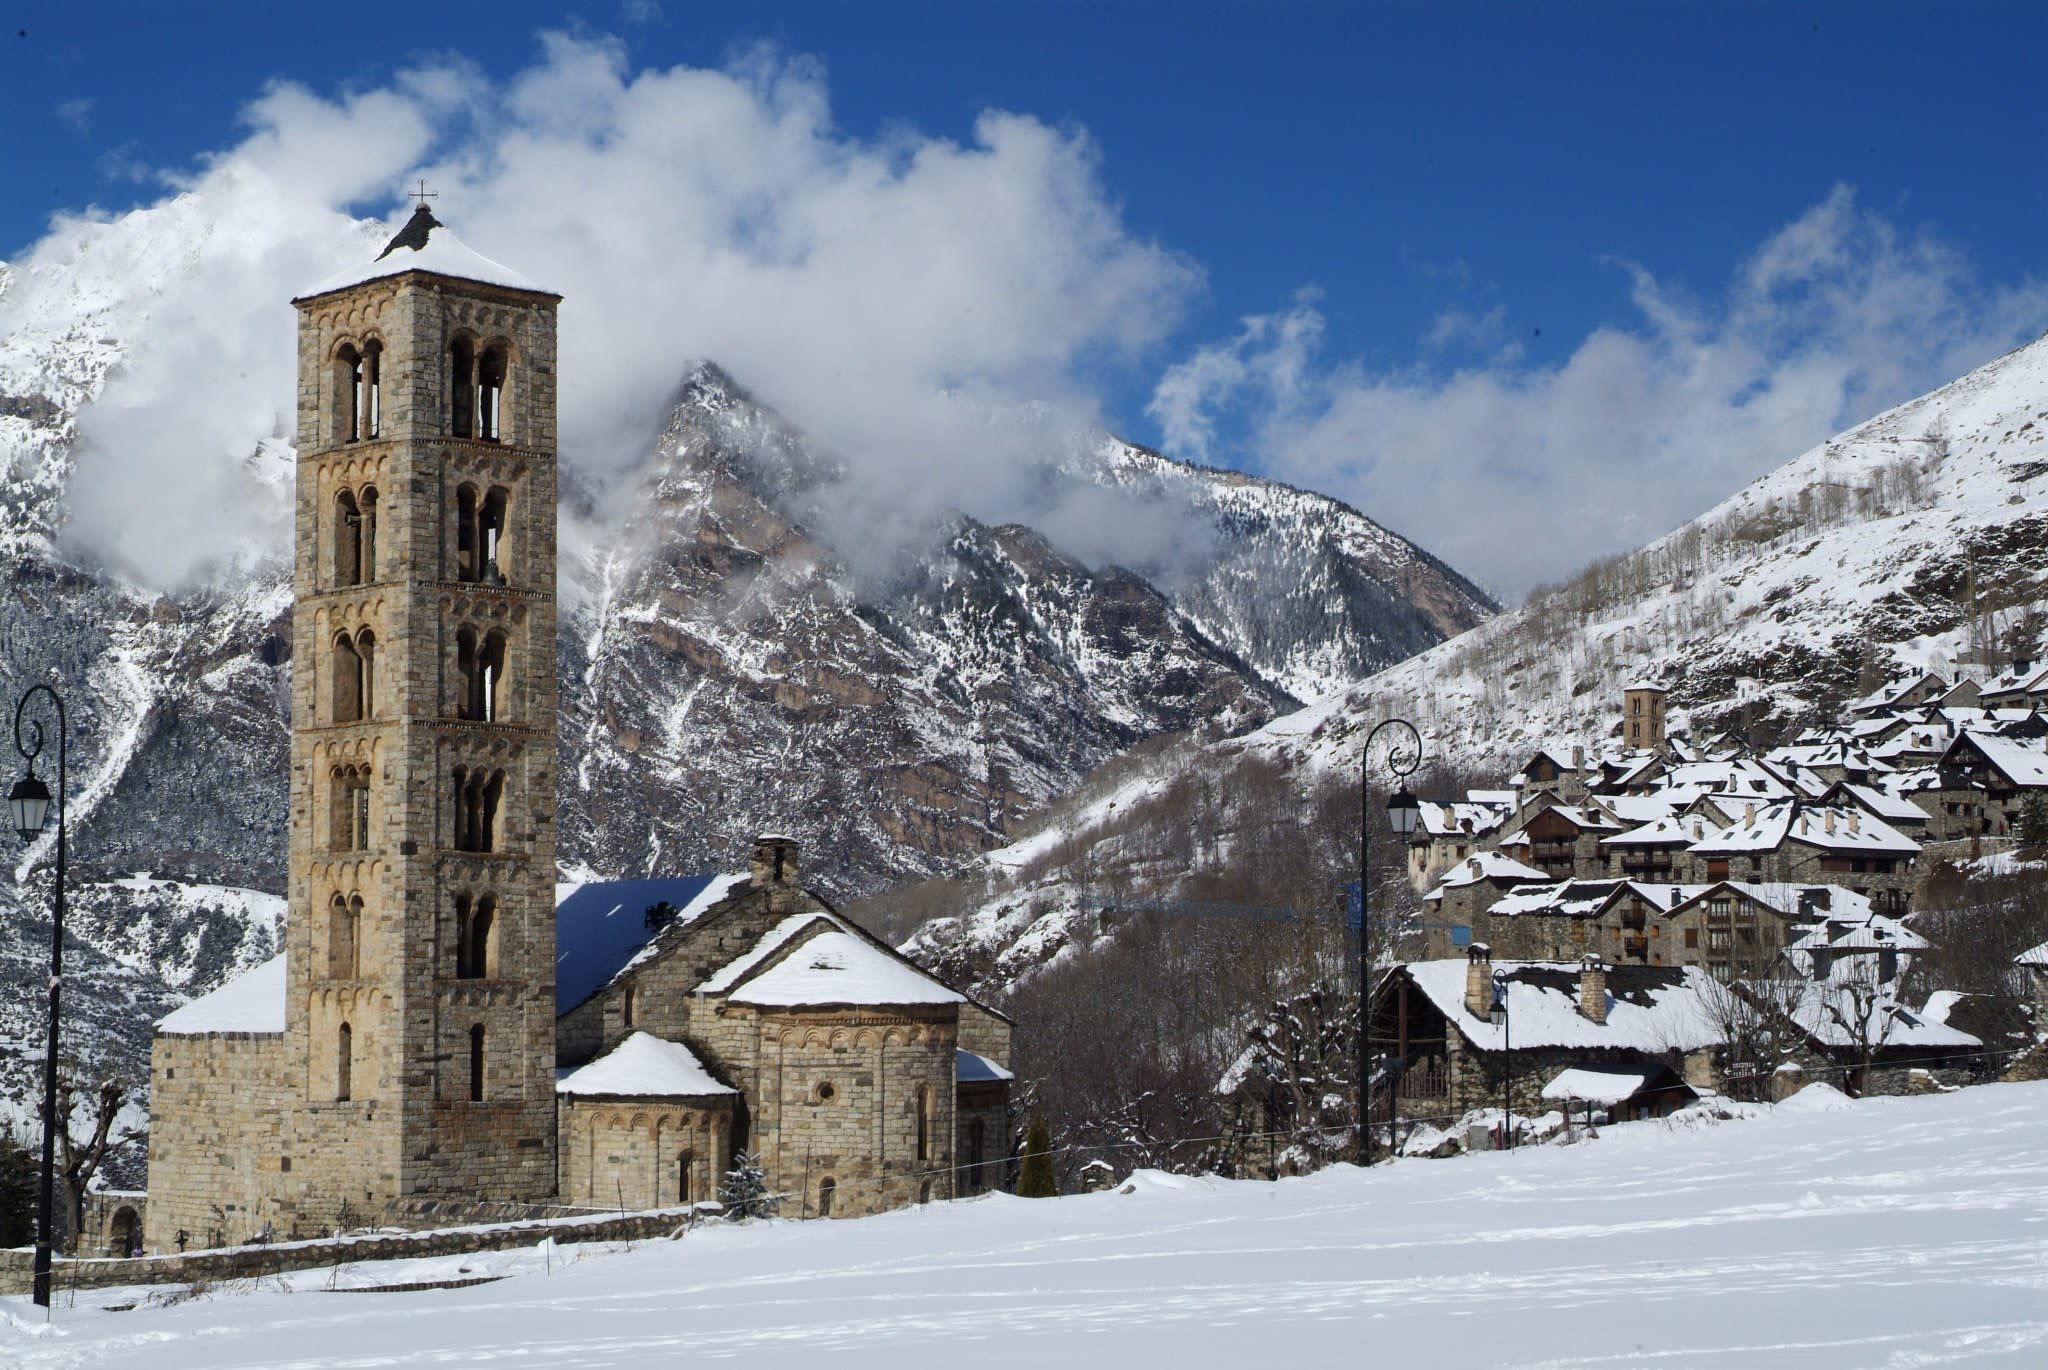 MONASTERIES, CHURCHES and SANCTUARIES – The Romanesque art